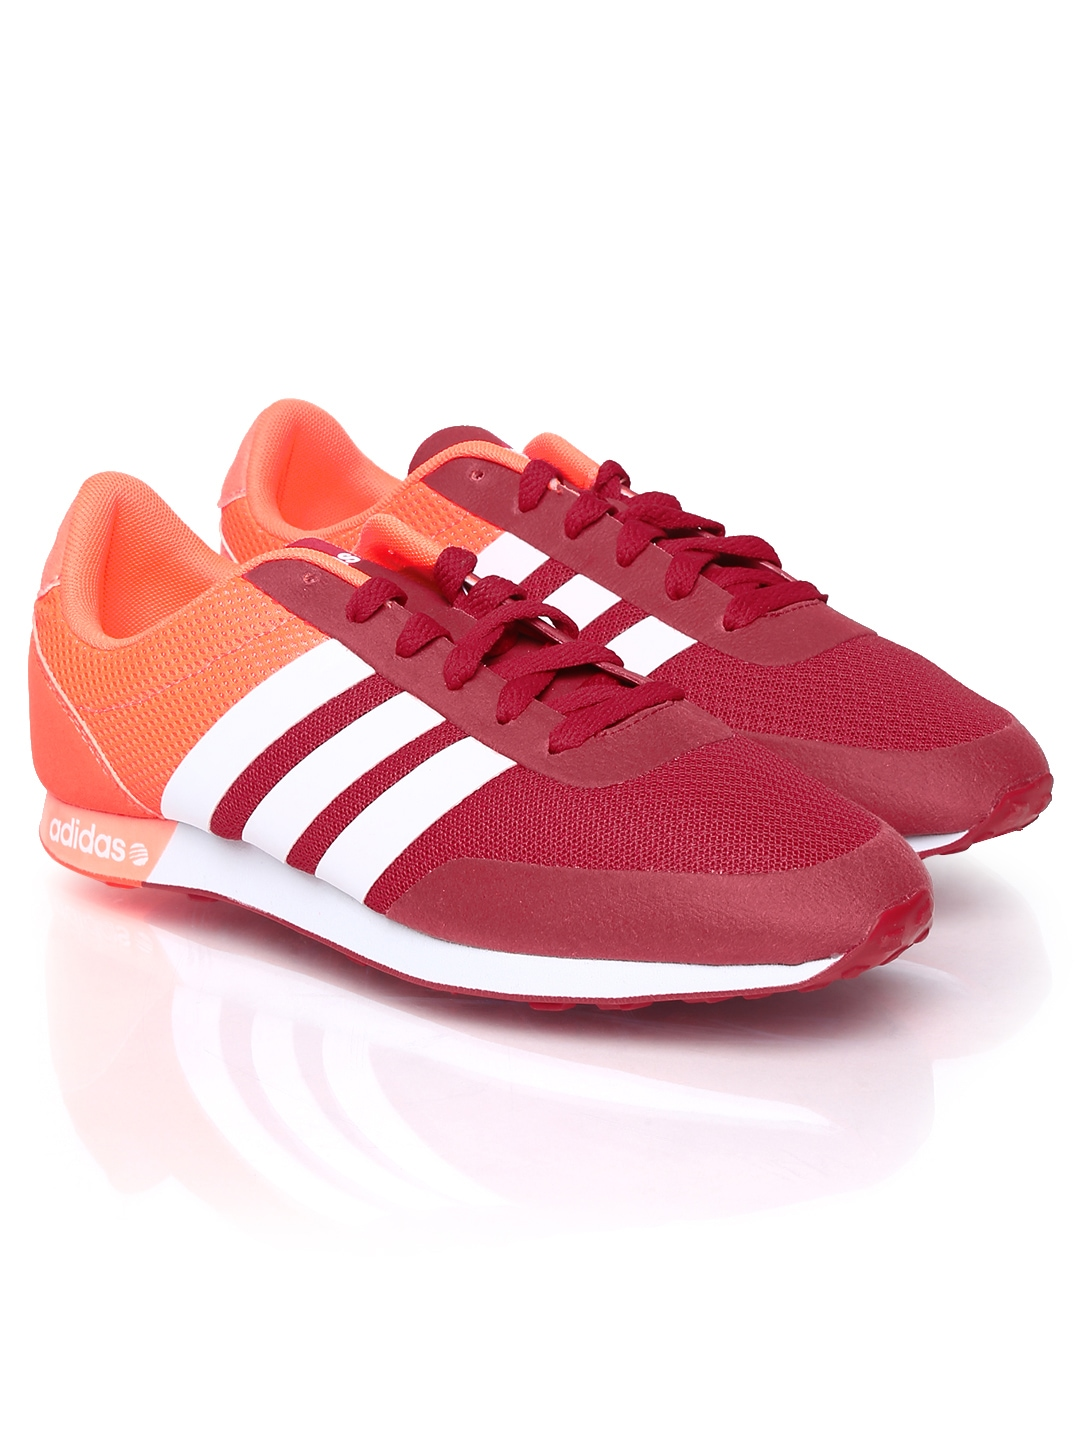 adidas cloudfoam ortholite red